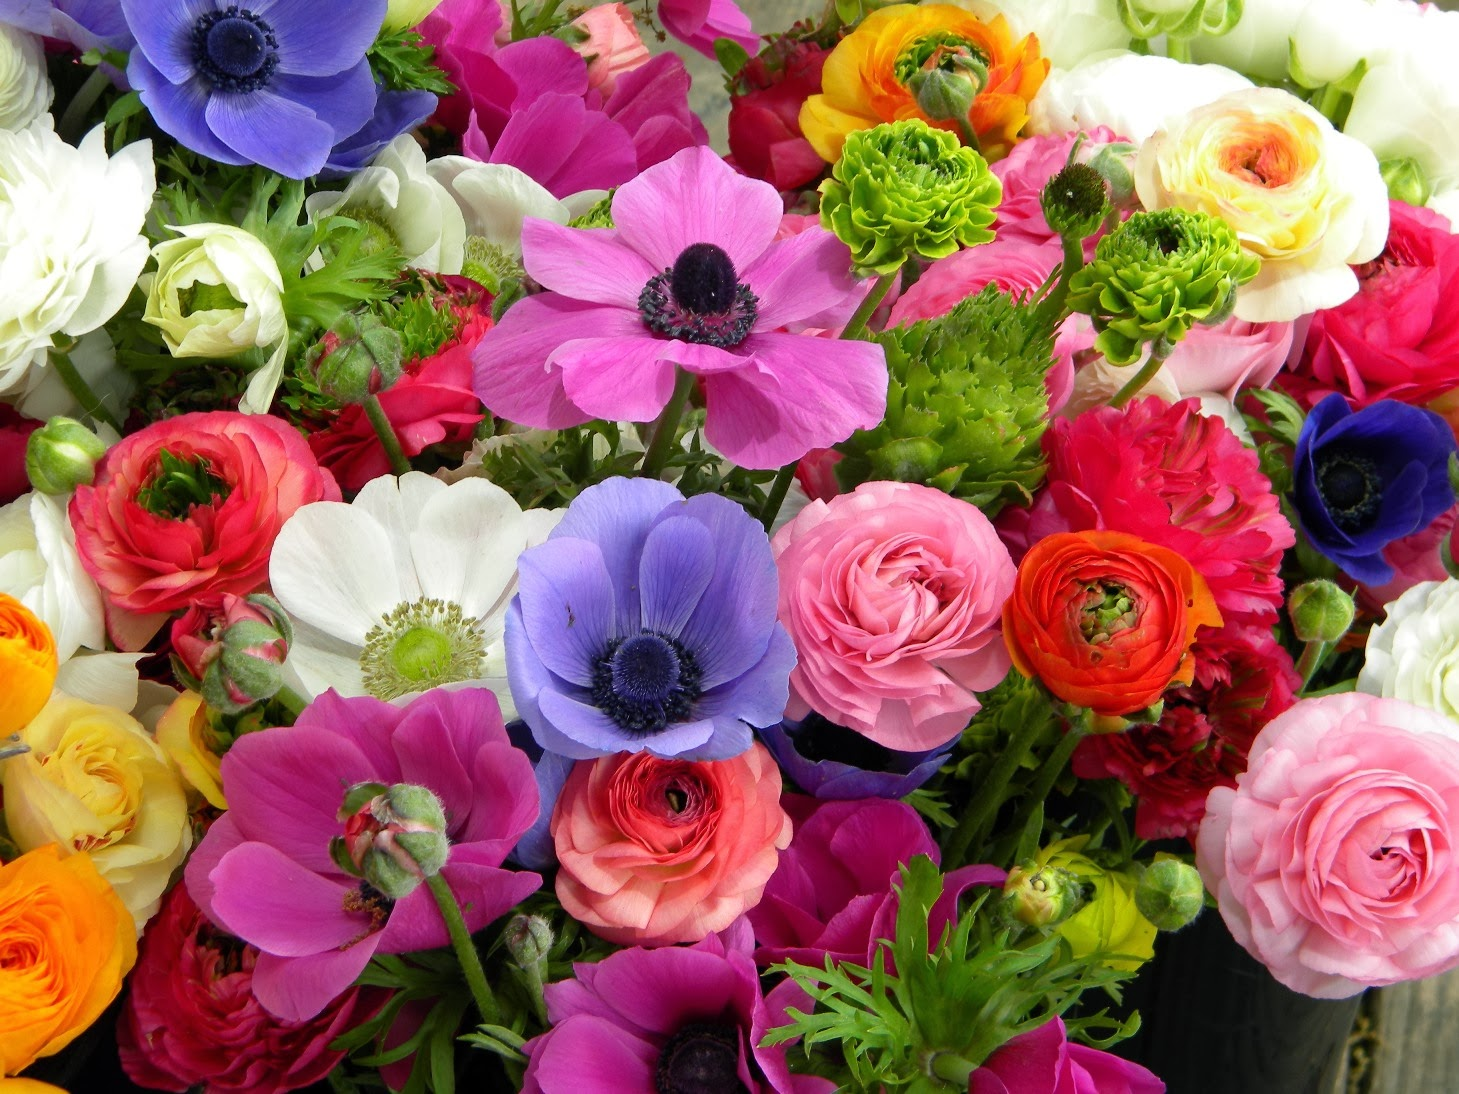 Wedding Flowers from Springwell: Ranunculus and Anemones for Spring ...